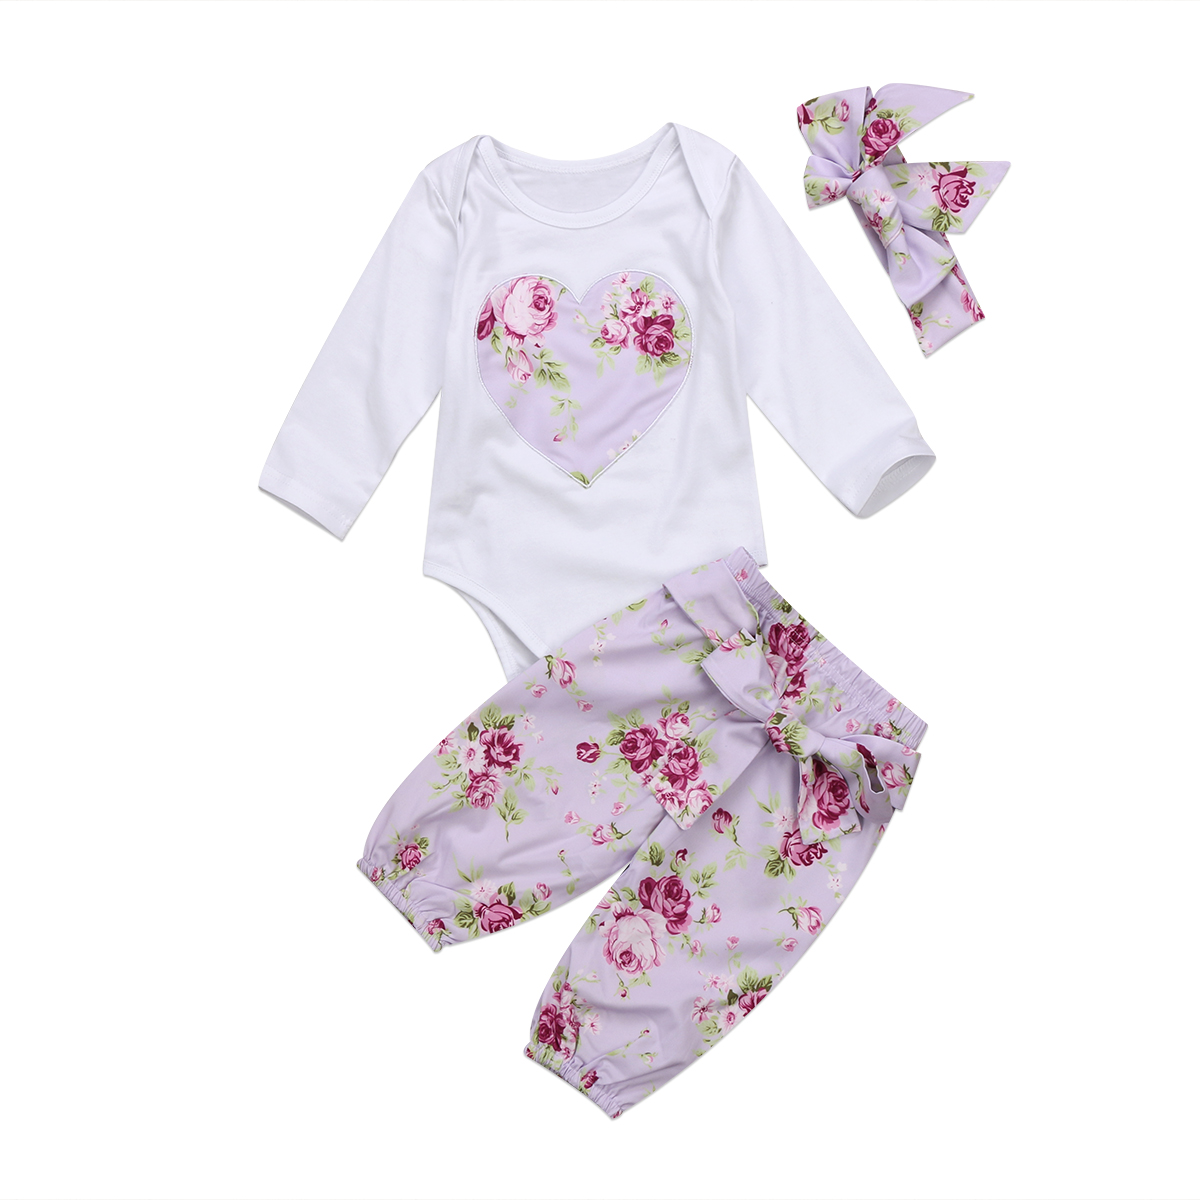 Pudcoco 3pcs Newborn Kid Baby Girl Floral Clothes Lovely Heart Jumpsuit Bodysuit Purple Pants Headband Outfits 0-24M